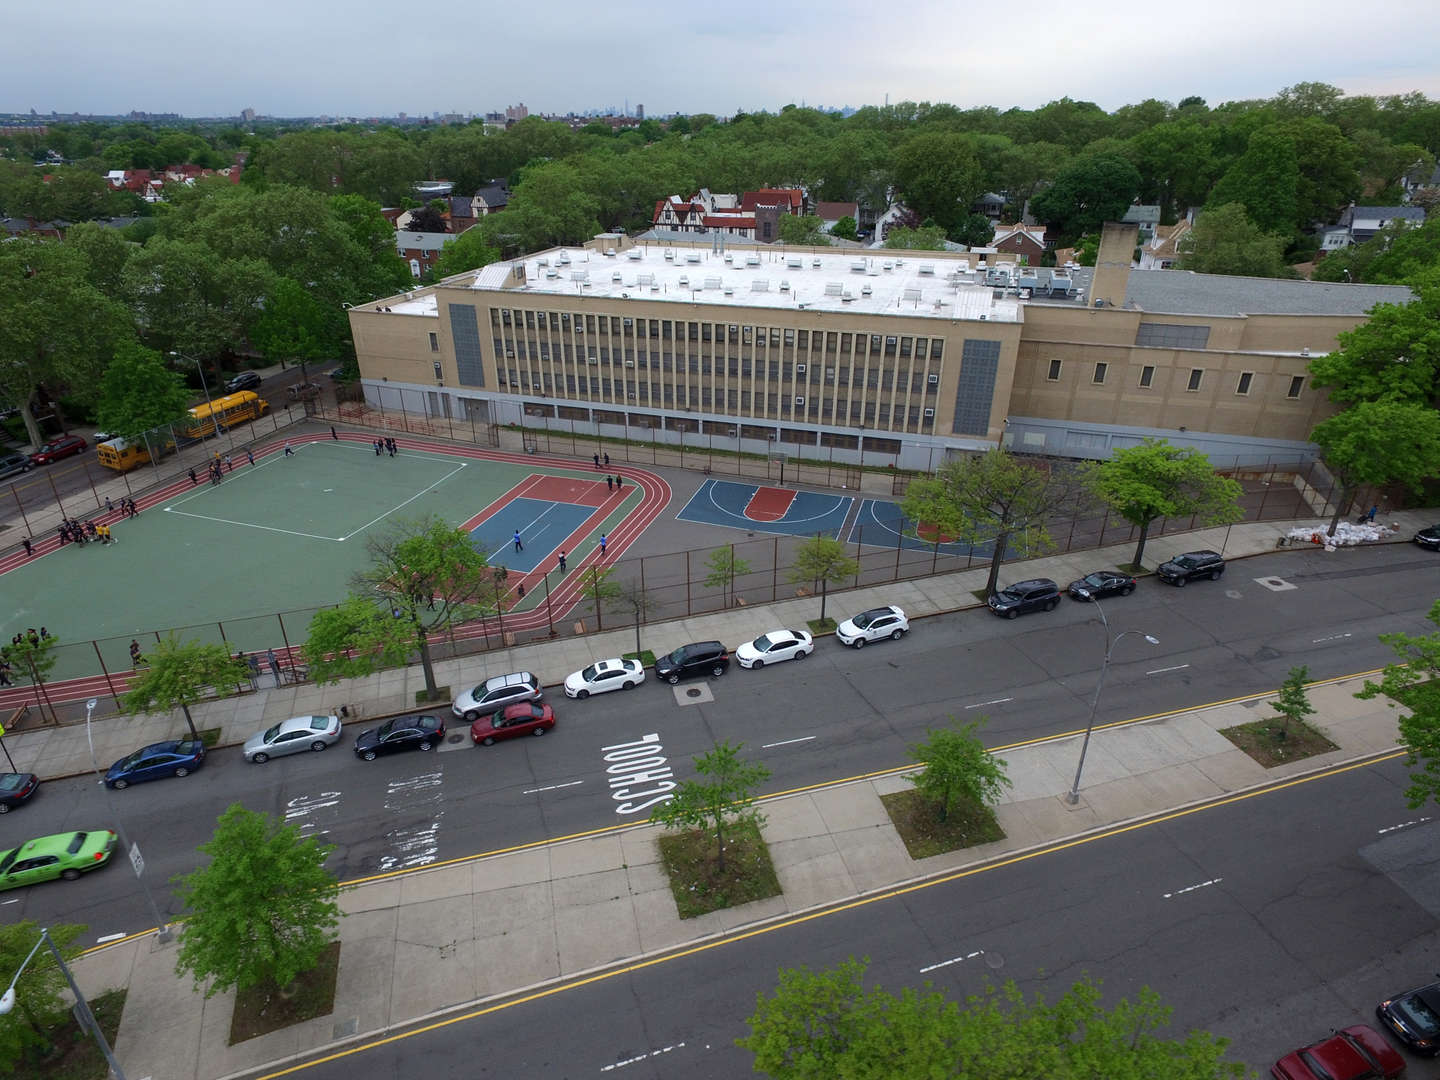 arial view of school building